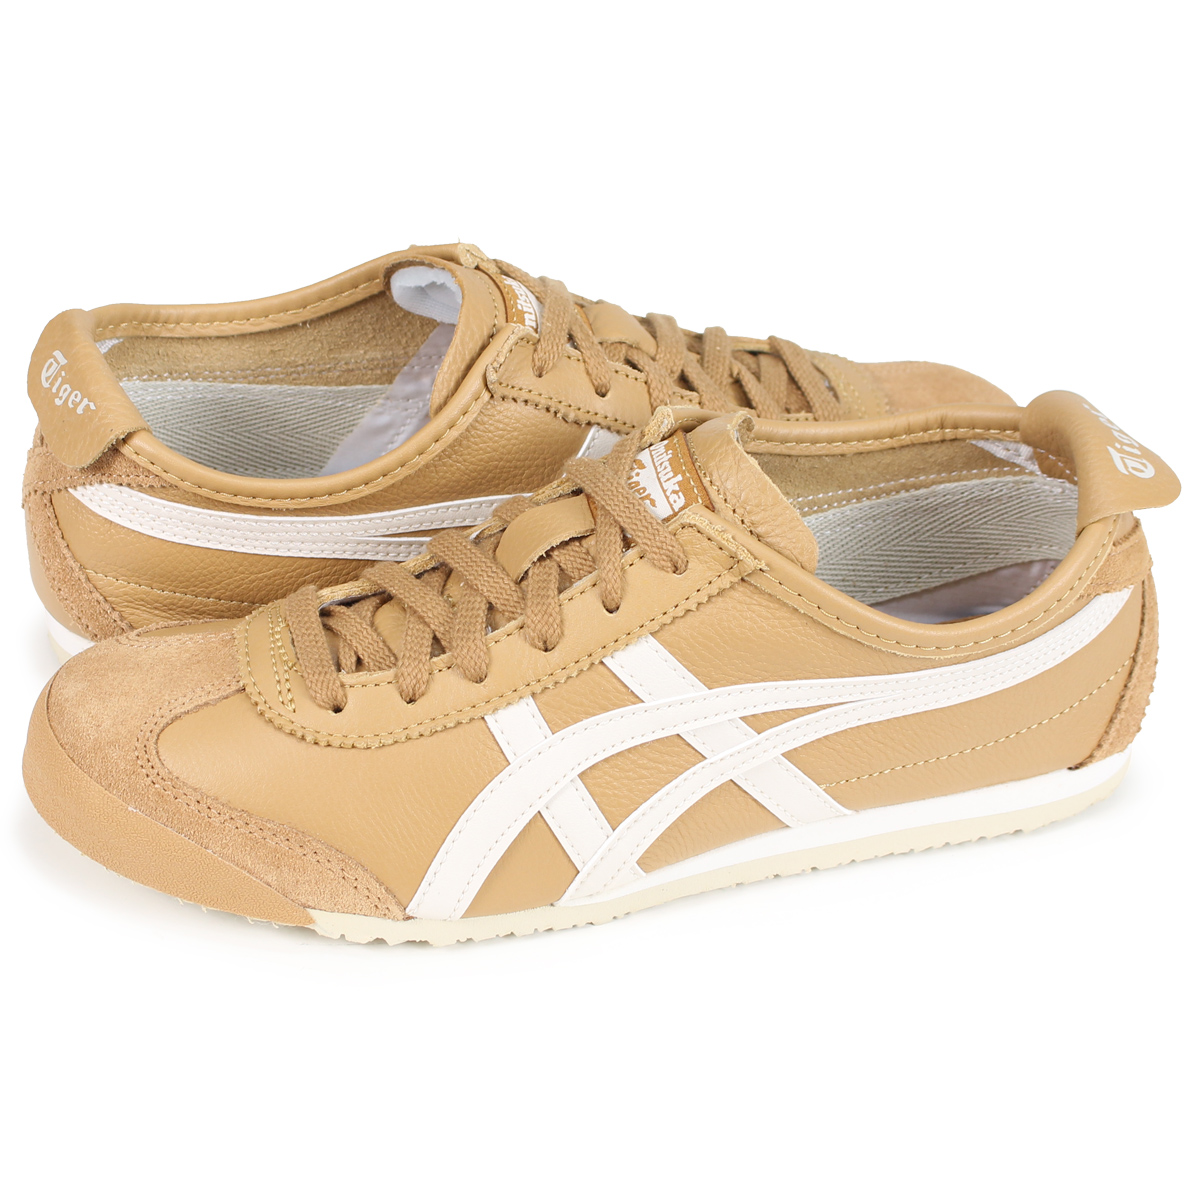 032ecba2ba3 Onitsuka Tiger MEXICO 66 Onitsuka tiger Mexico 66 men s lady s sneakers  1183A201-200 brown beige  load planned Shinnyu load in reservation product  8 2 ...